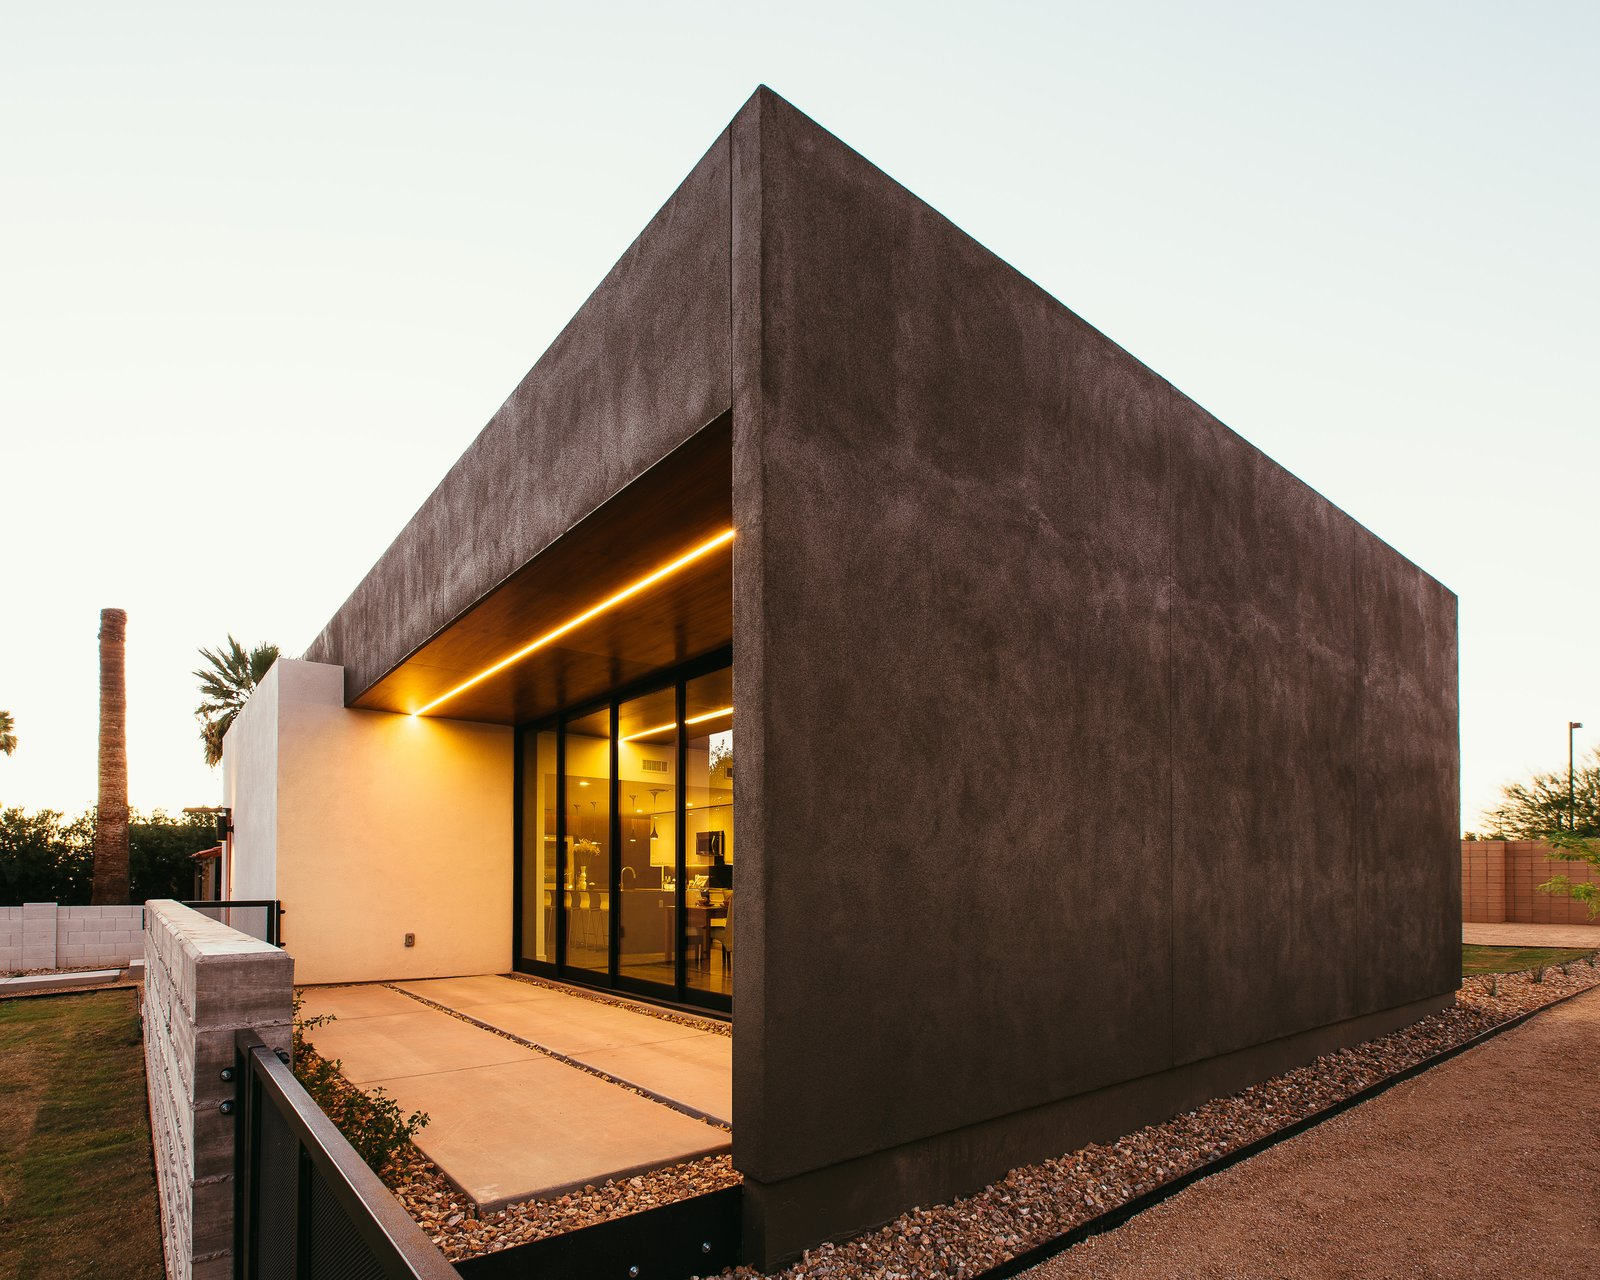 Concrete Patio, Porch, Deck, Ceiling Lighting, Trees, Concrete Floor, Grass, Front Yard, and Outdoor #modern #minimal #exterior #lighting #phoenix #arizona  Link House by The Ranch Mine